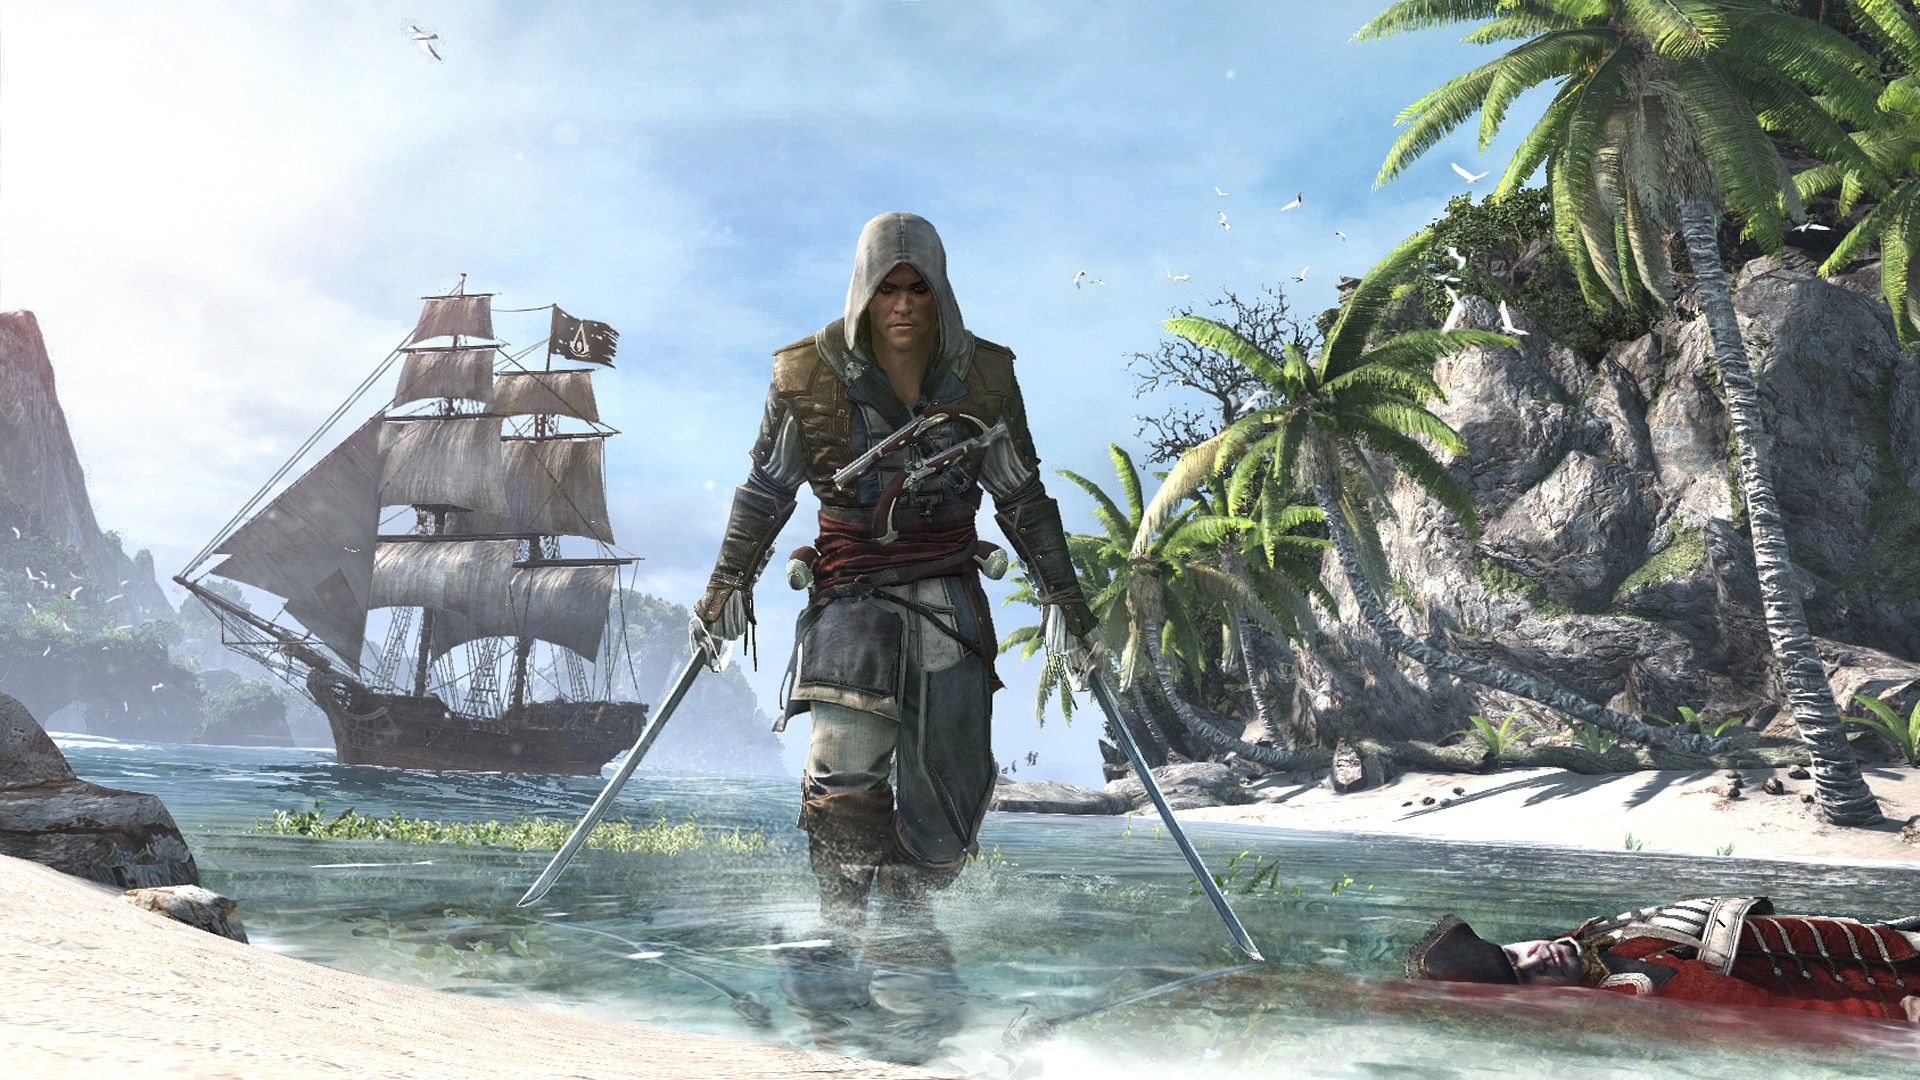 Is 'Assassin's Creed IV: Black Flag' the last significant game in the series?